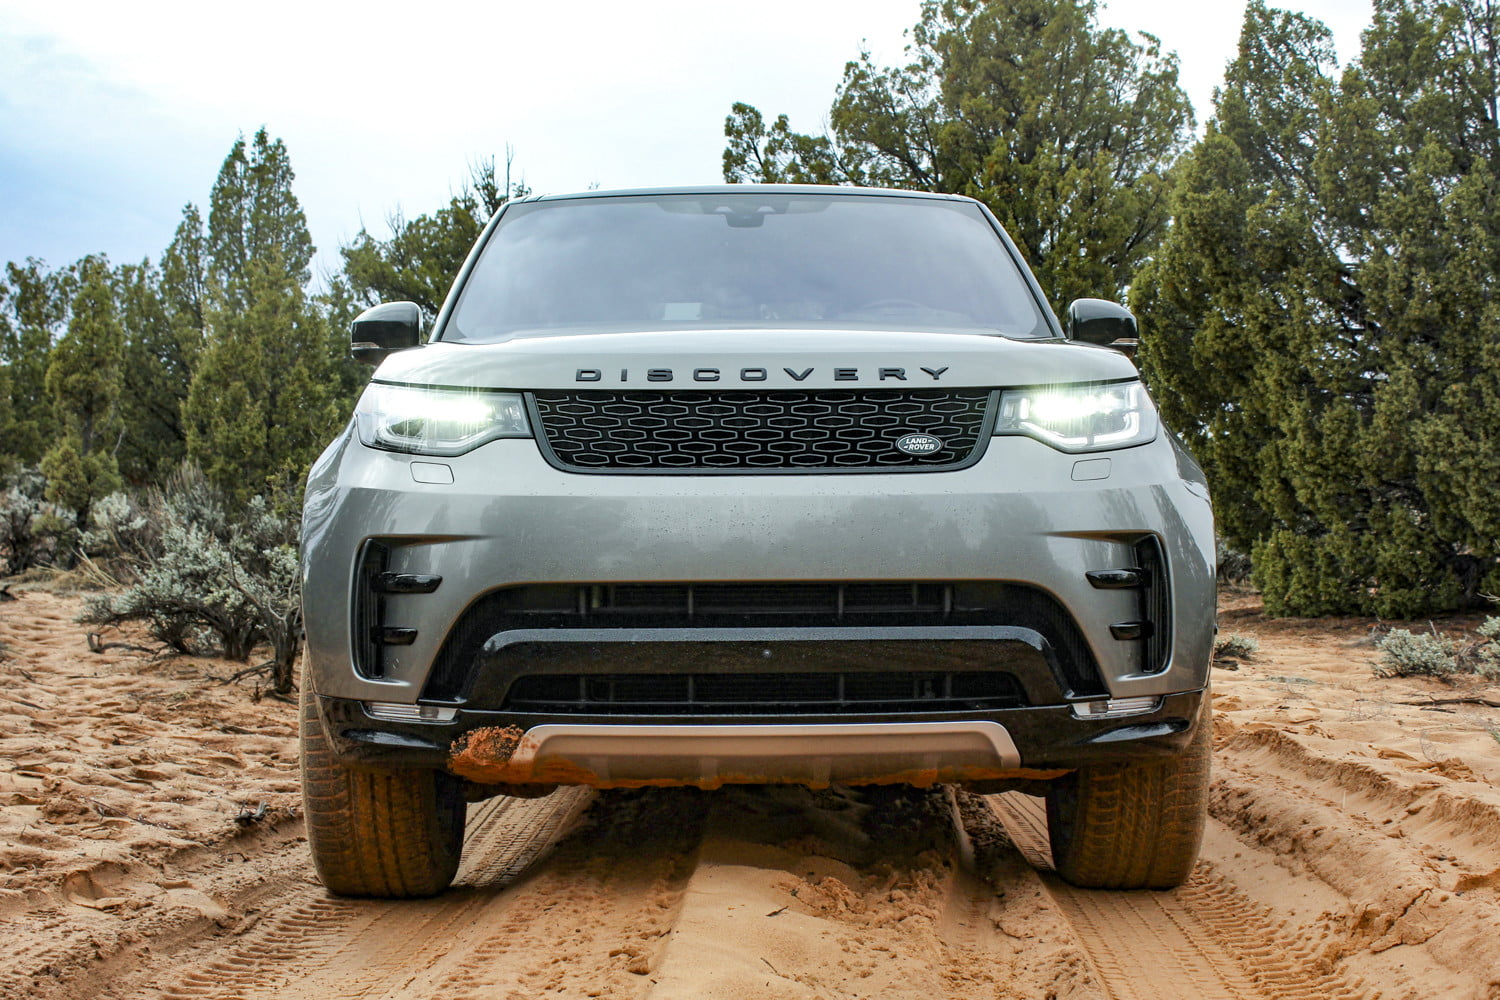 parts new road off landrover offroad for sale land discovery rover range